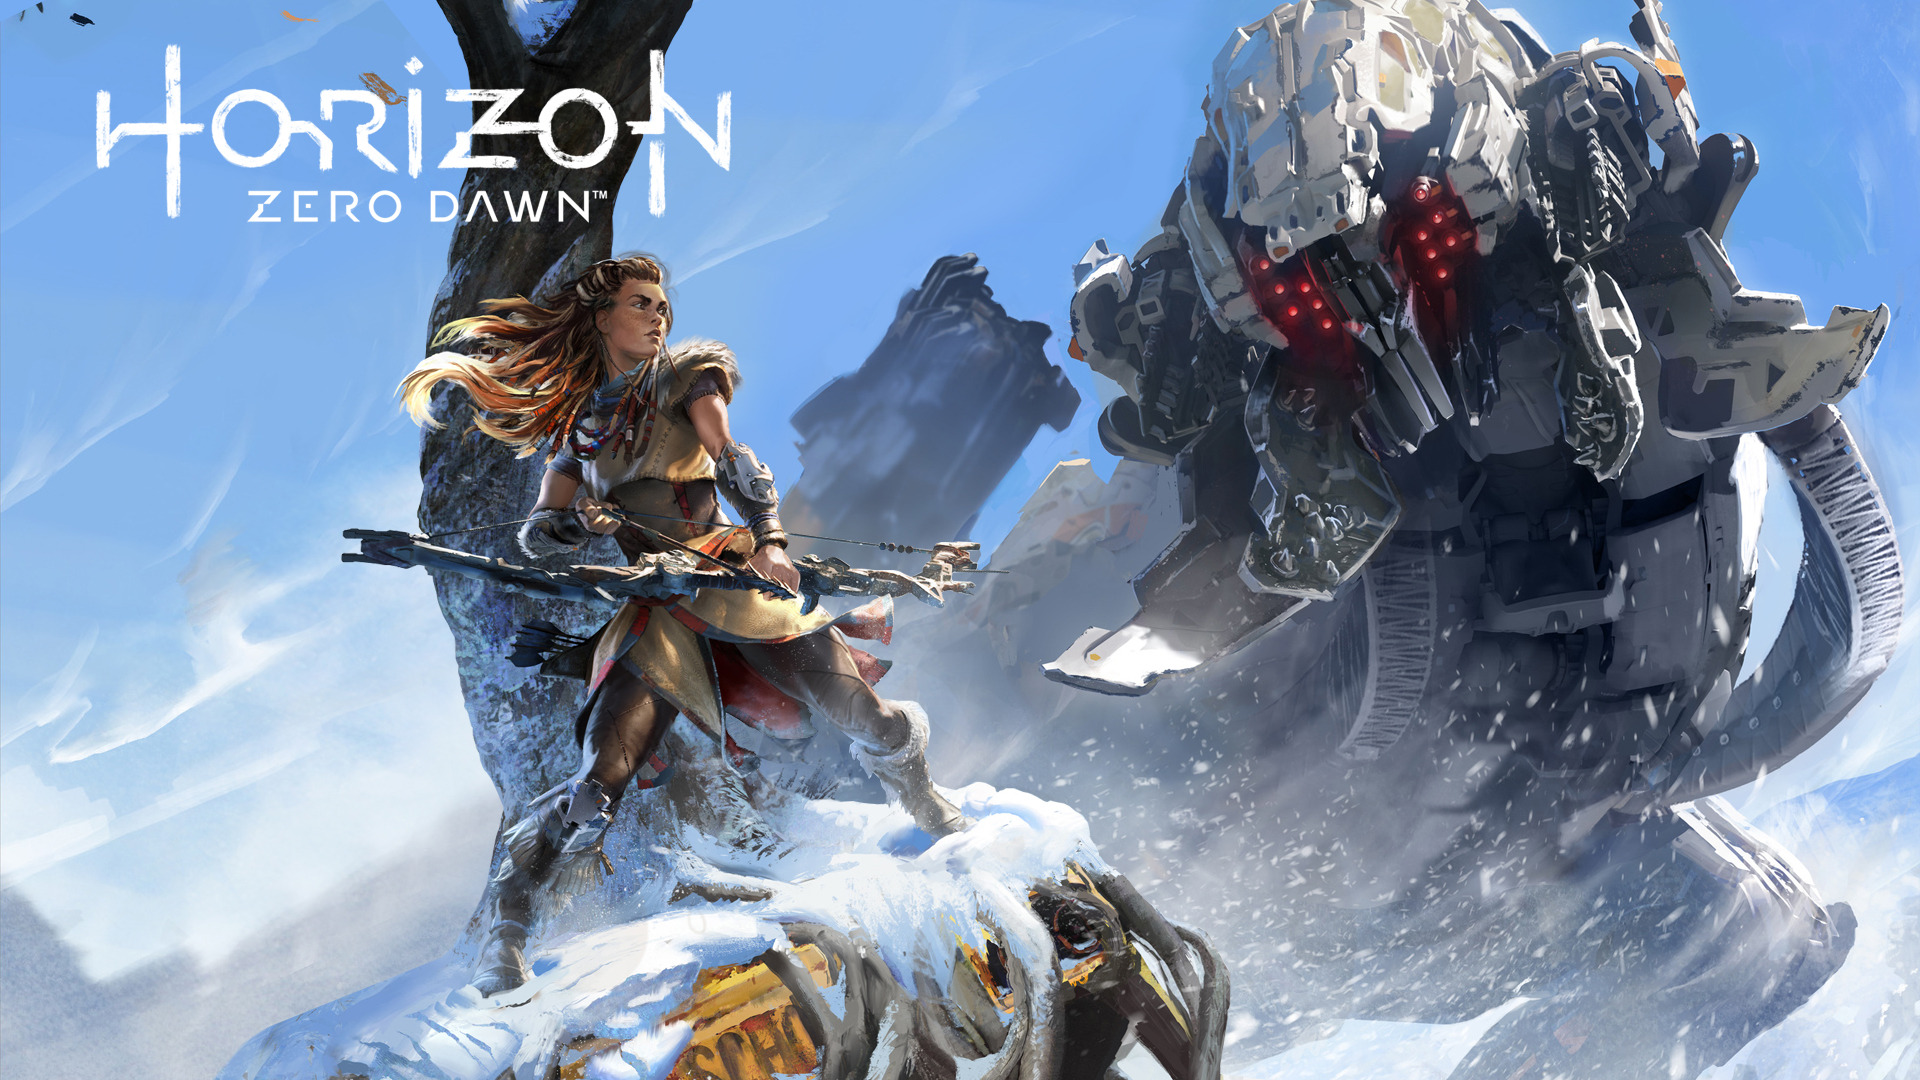 2017 horizon zero dawn game, hd games, 4k wallpapers, images